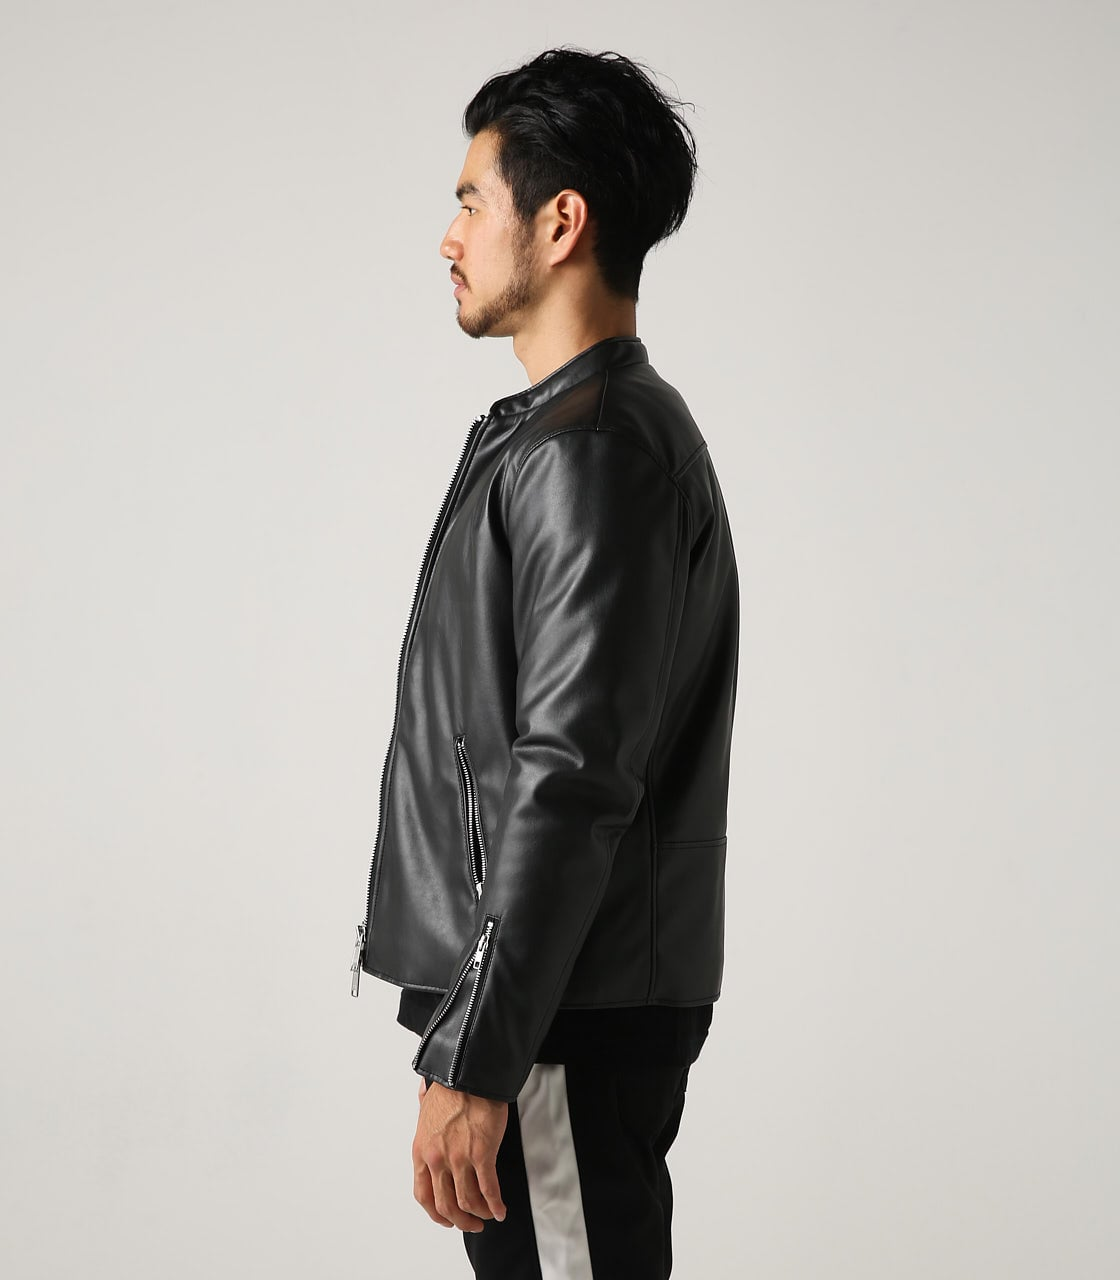 【AZUL BY MOUSSY】合皮中綿シングルライダース【MOOK48掲載】 詳細画像 BLK 6